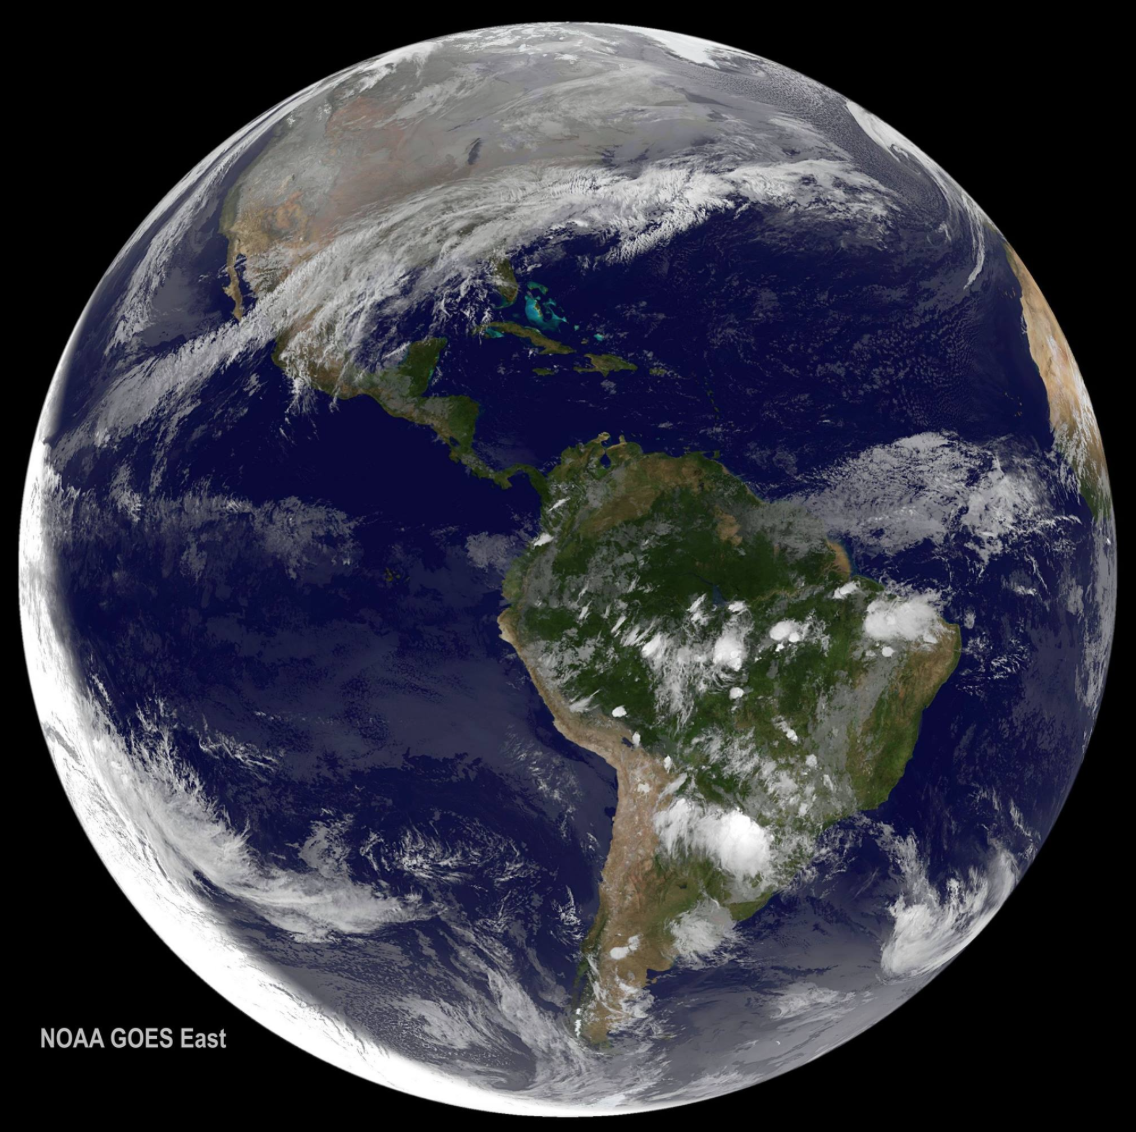 #HappyNewYear! NOAA's GOES East satellite captured this image of our home on the first day of #2016. https://t.co/UyzeWwrgo9